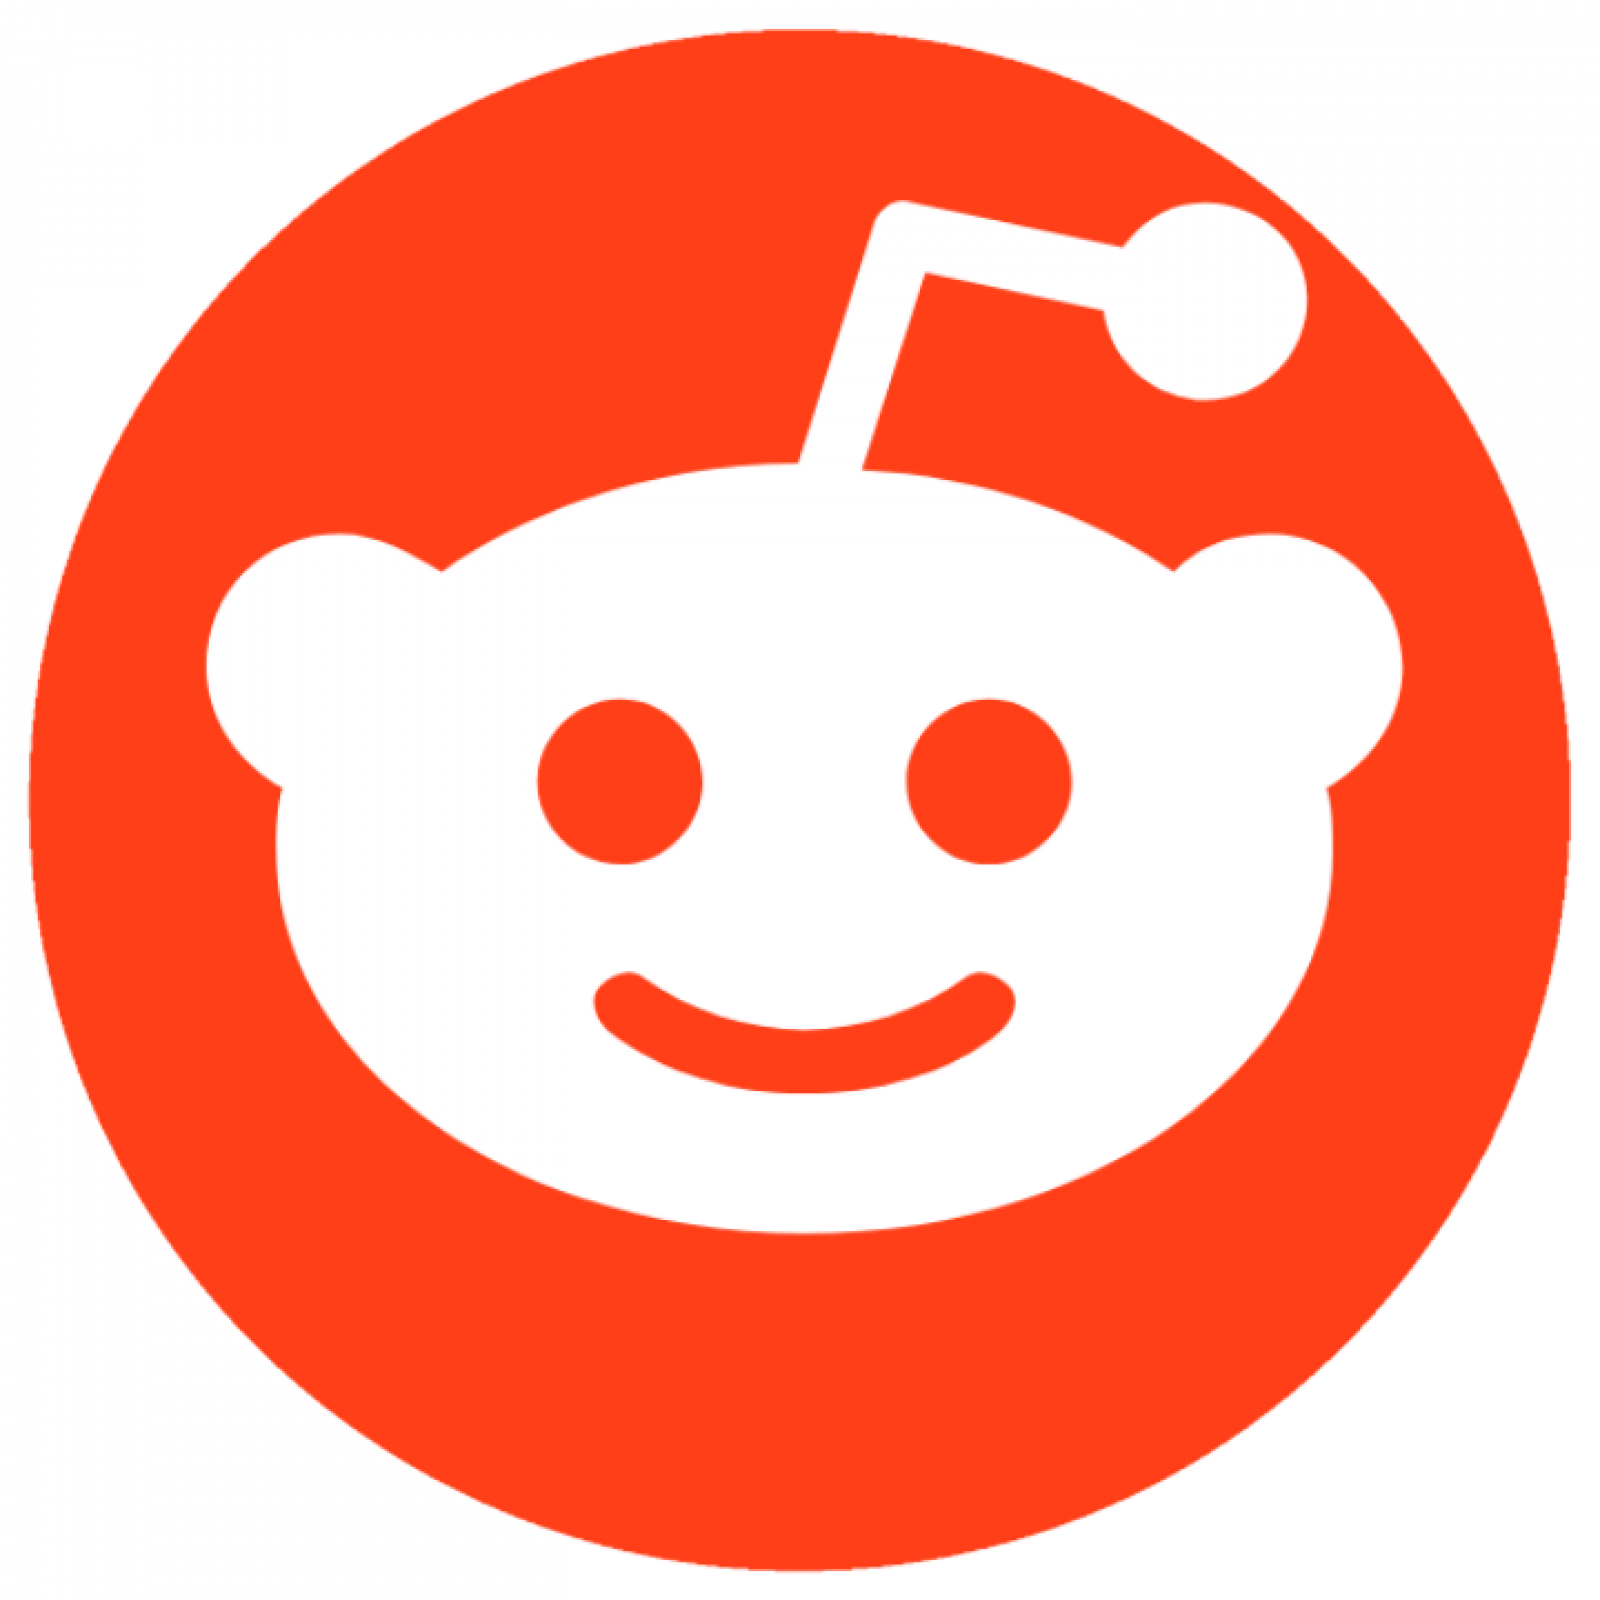 Reddit Account with 500-9000 Post Karma